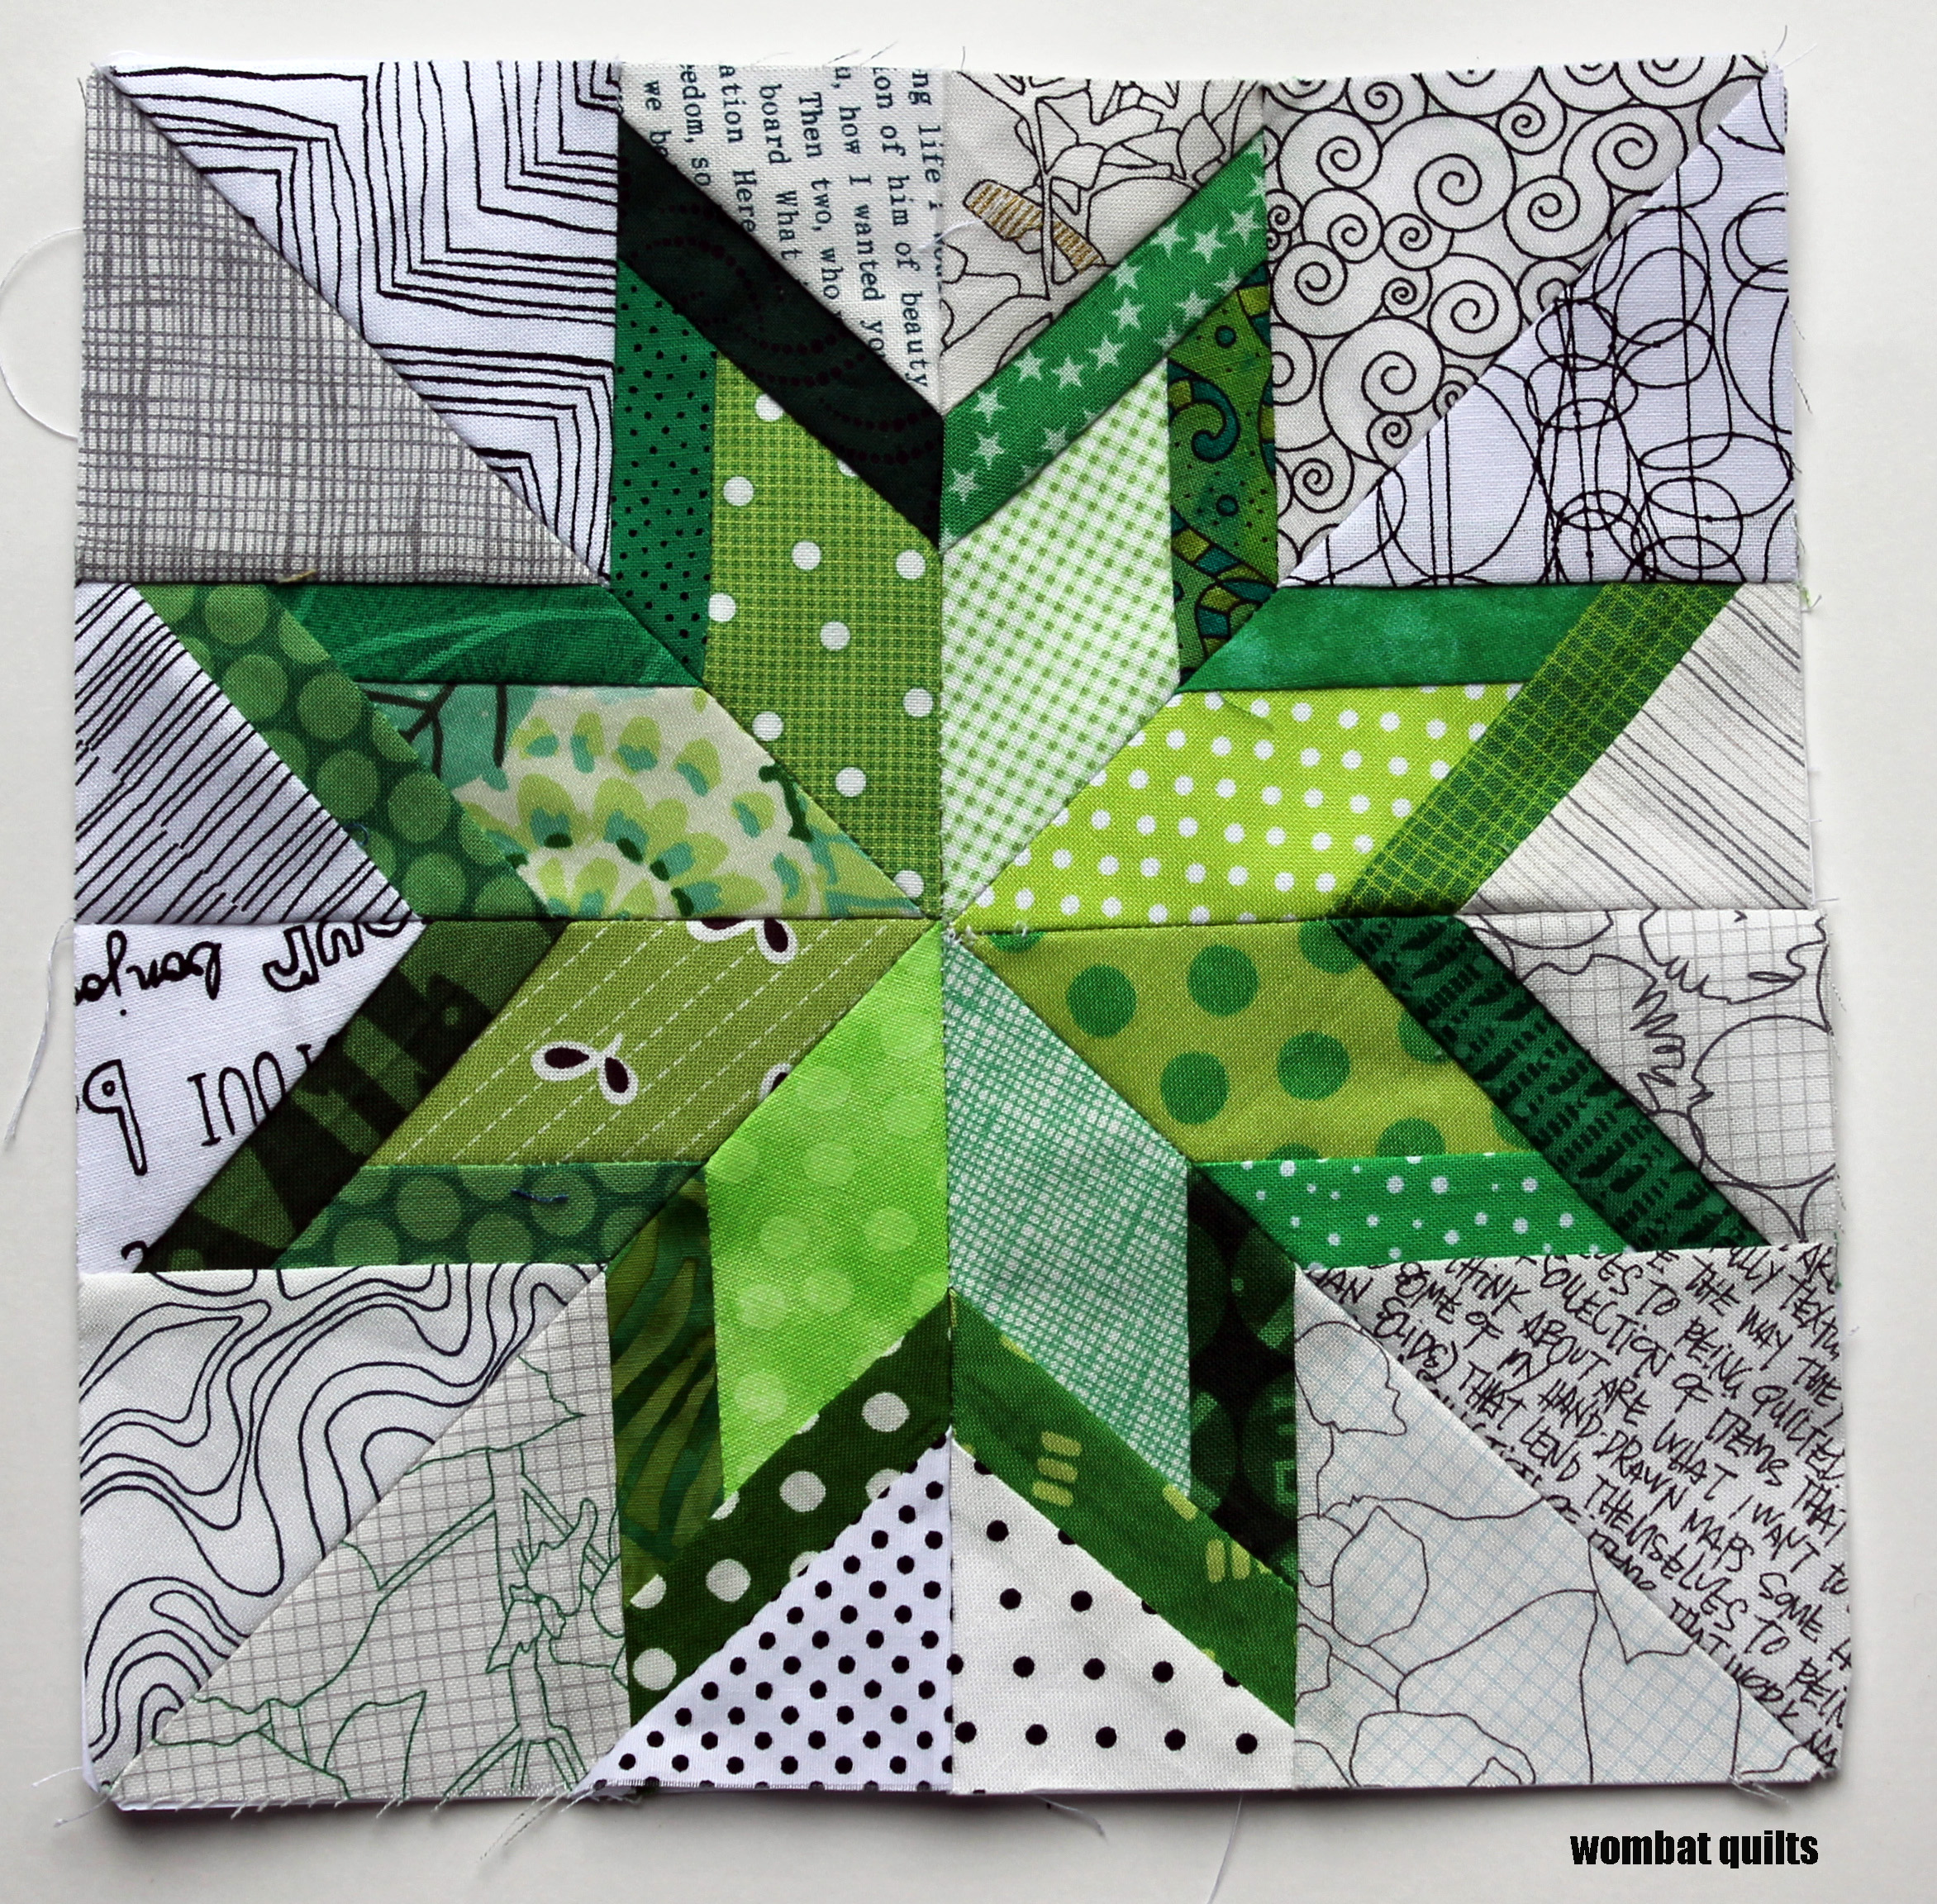 8 inch stars… a new paper piecing adventure | WOMBAT QUILTS : starry night quilt pattern - Adamdwight.com